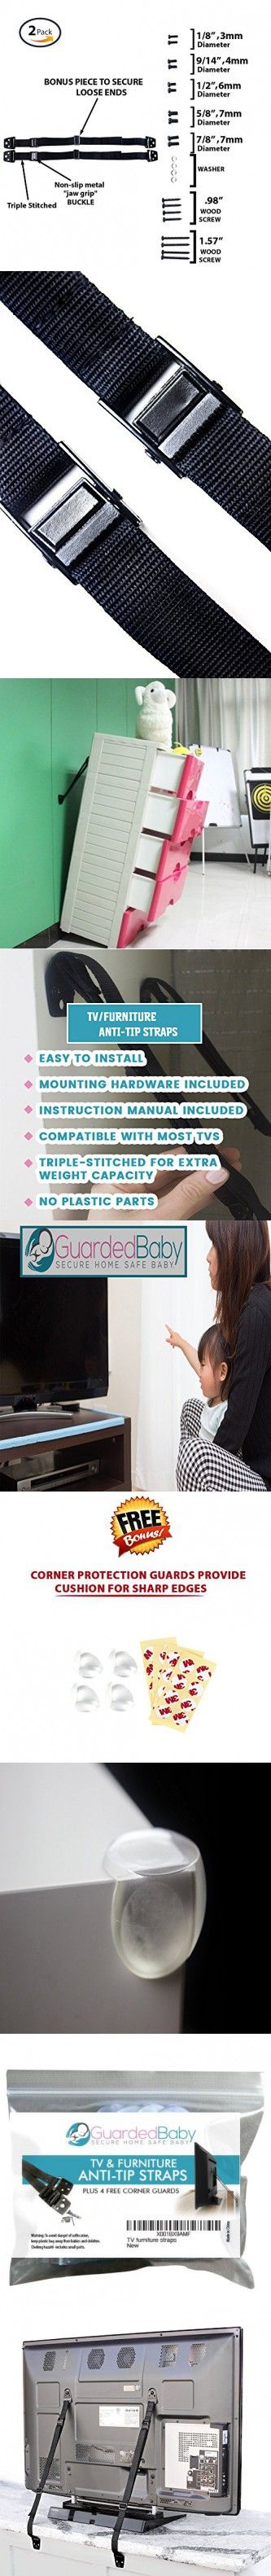 GuardedBaby TV 2 pack Furniture Anti Tip Straps